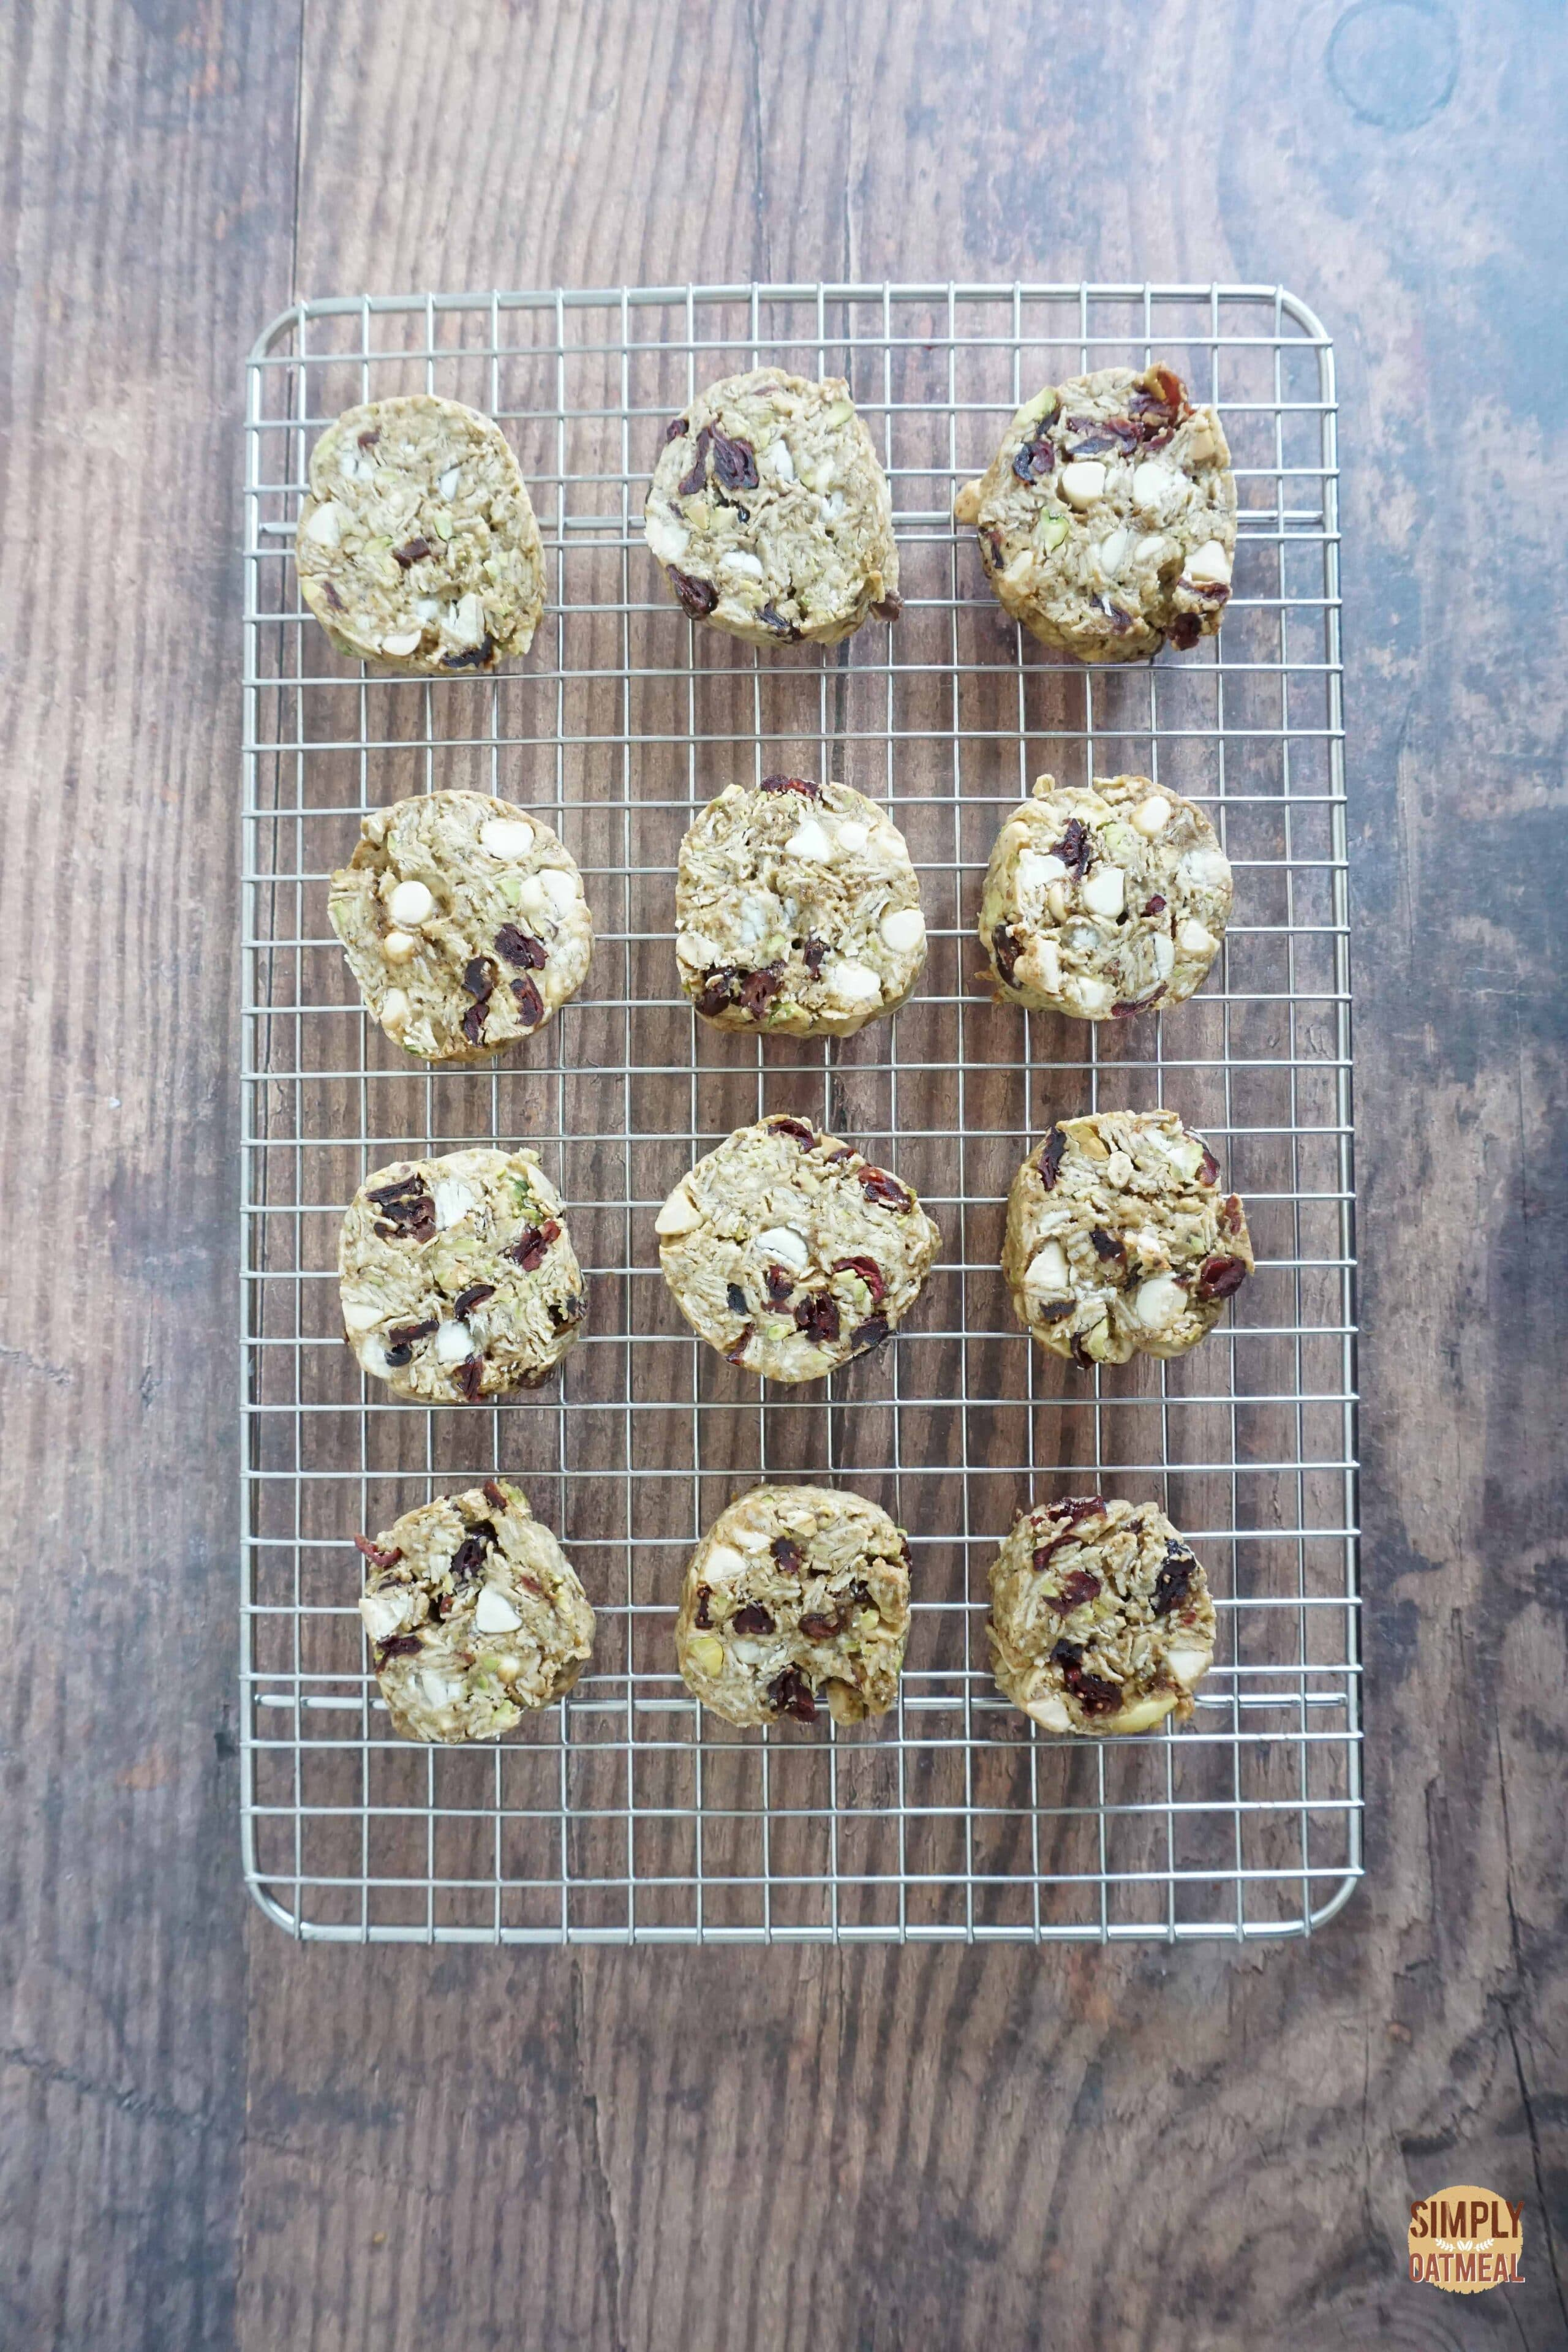 Fresh baked white chocolate cherry oatmeal cookies on a wire rack